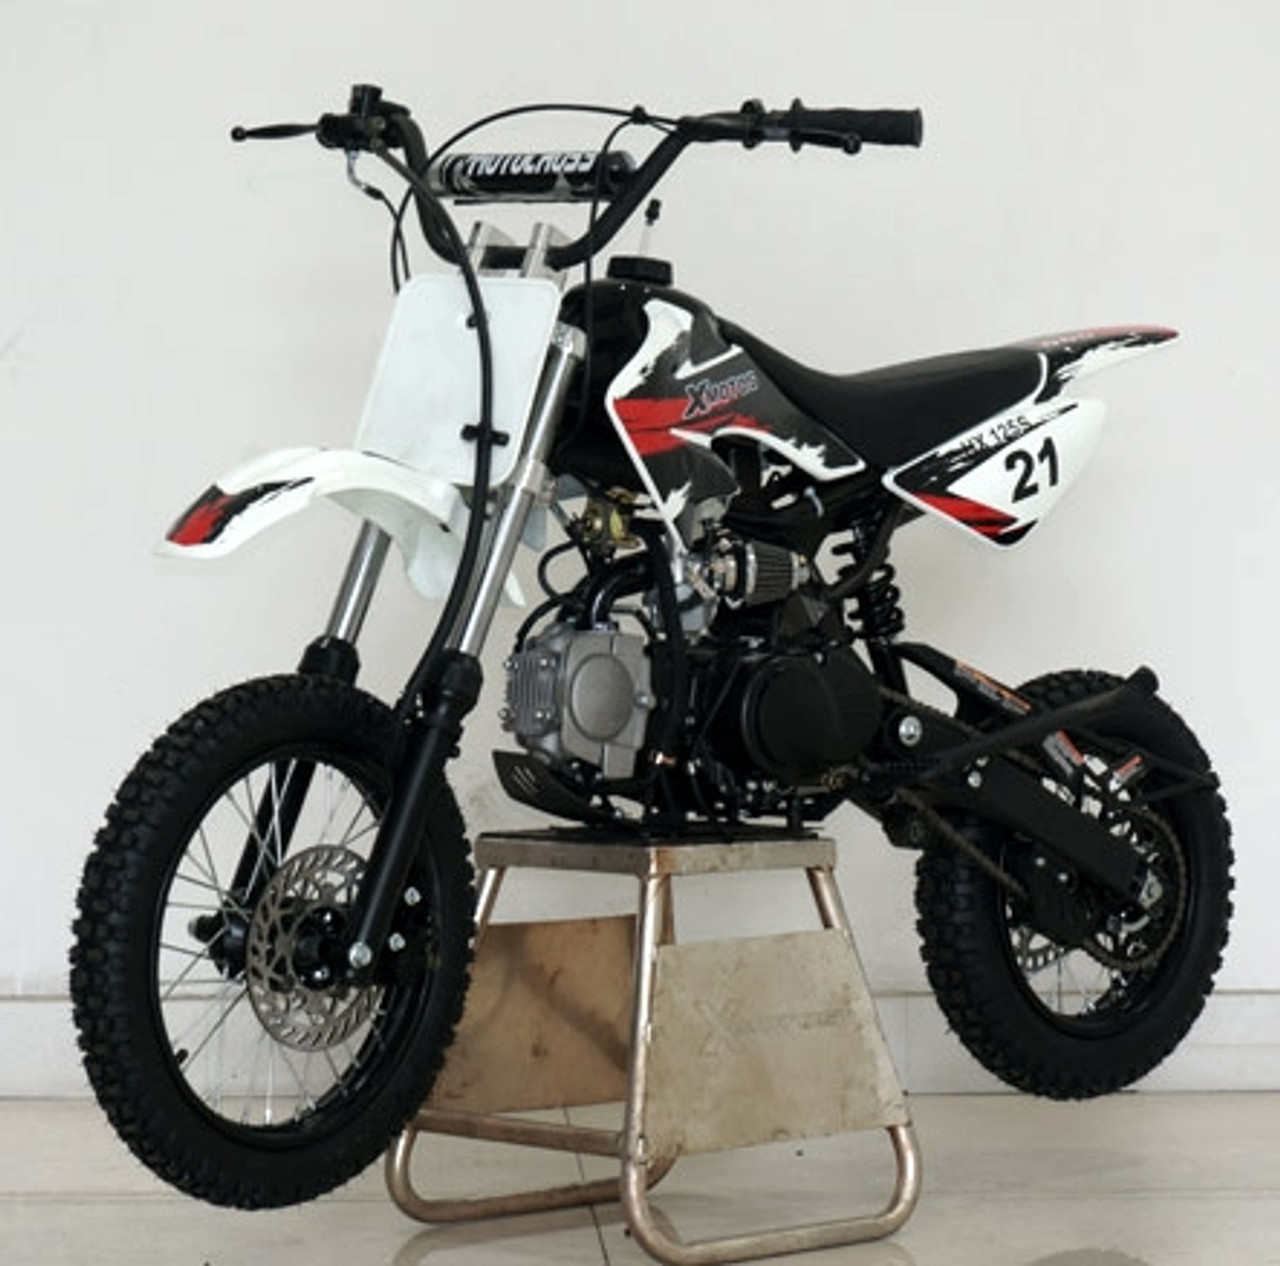 Ricky Power Sports XMOTO  DIRT bike 200cc